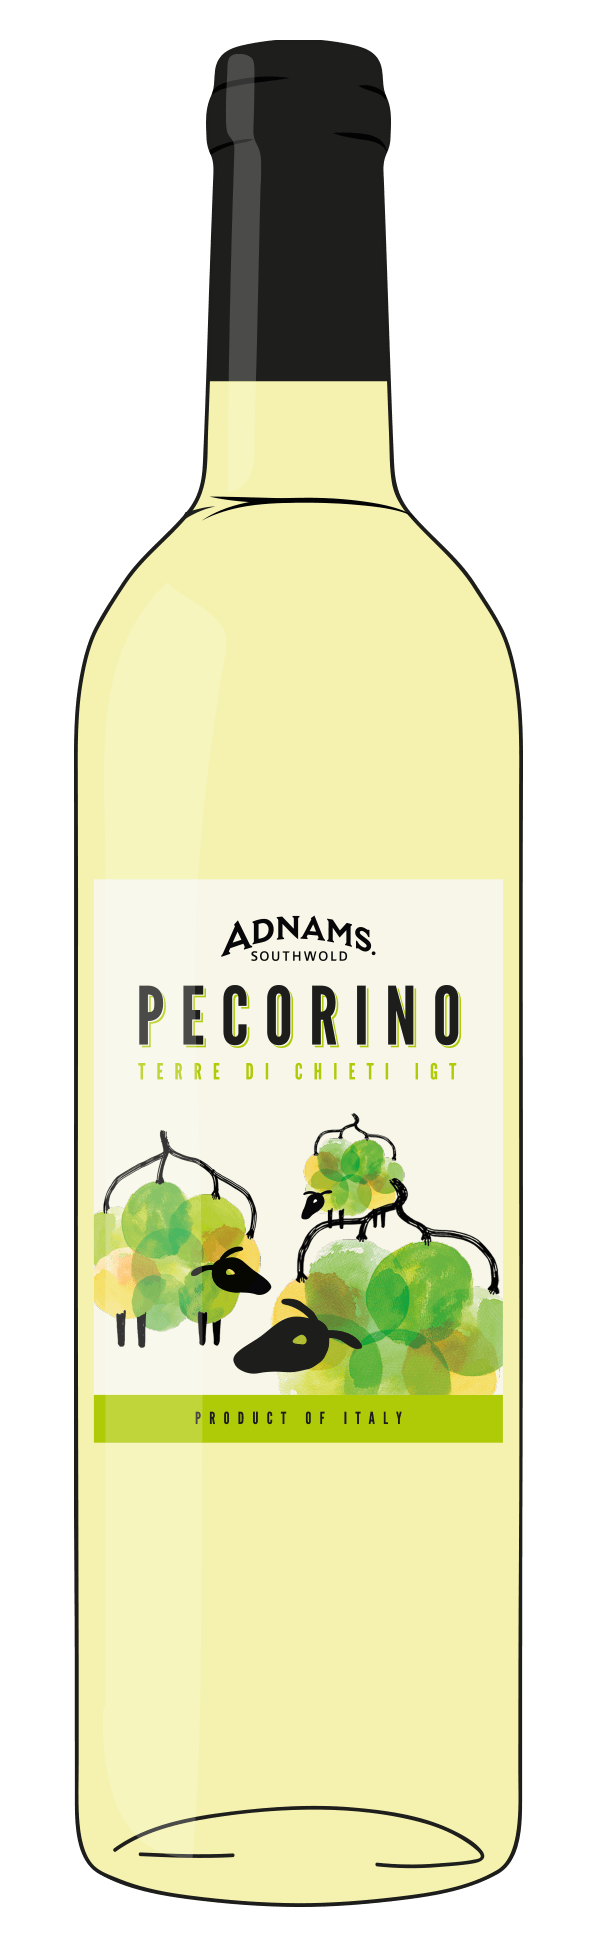 Best Adnams Pecorino, Terre di Chieti, Italy Stockists